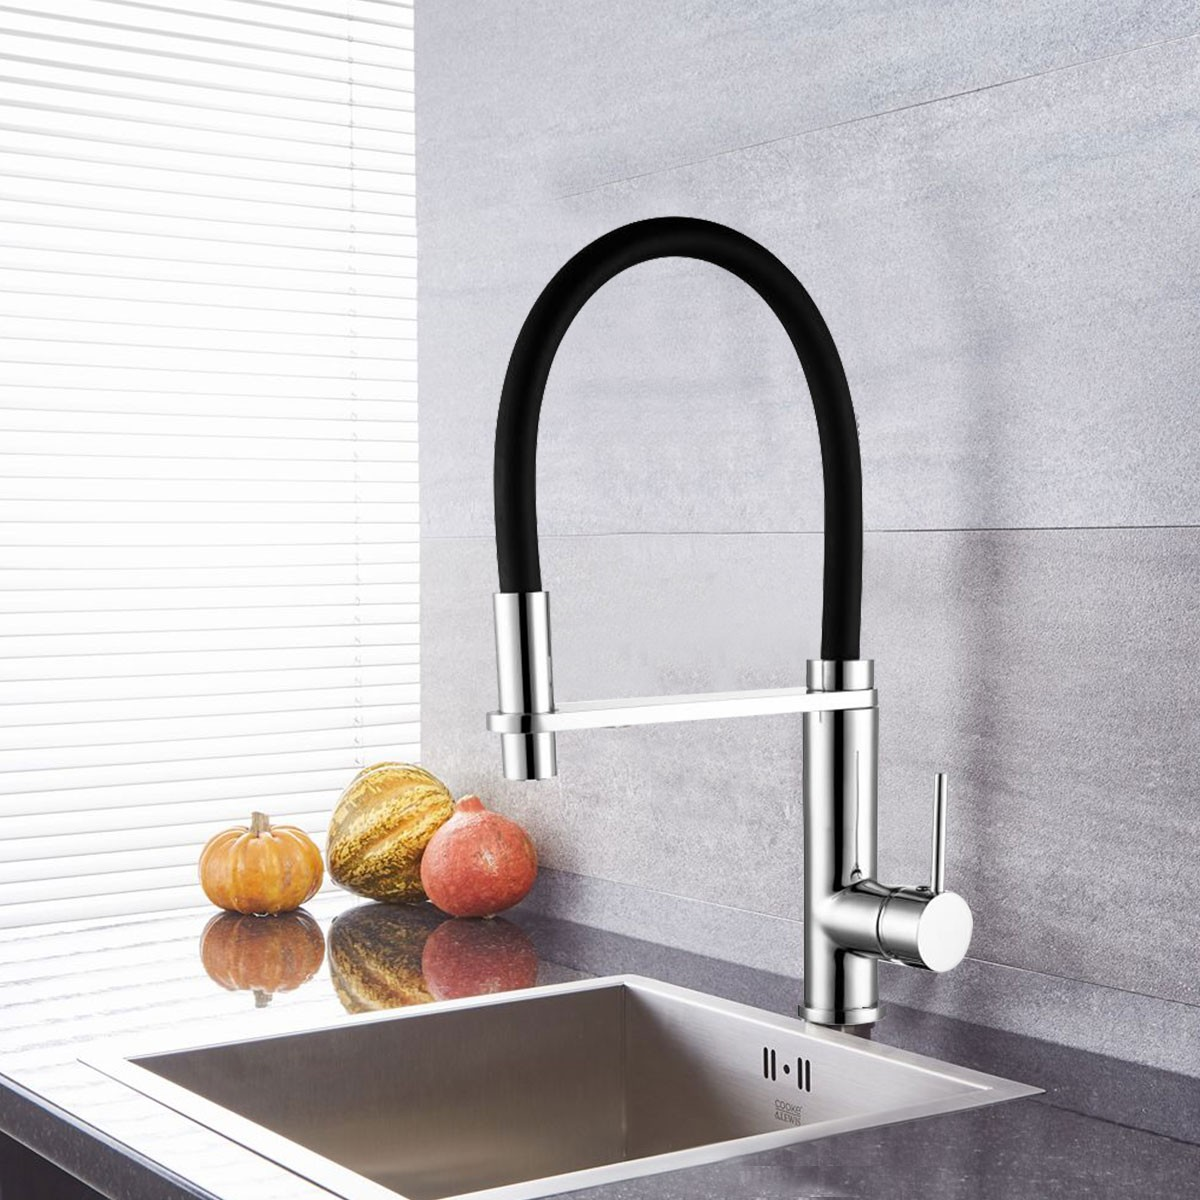 Chrome Kitchen Faucet with Black Flexible Hose (YDL0002)